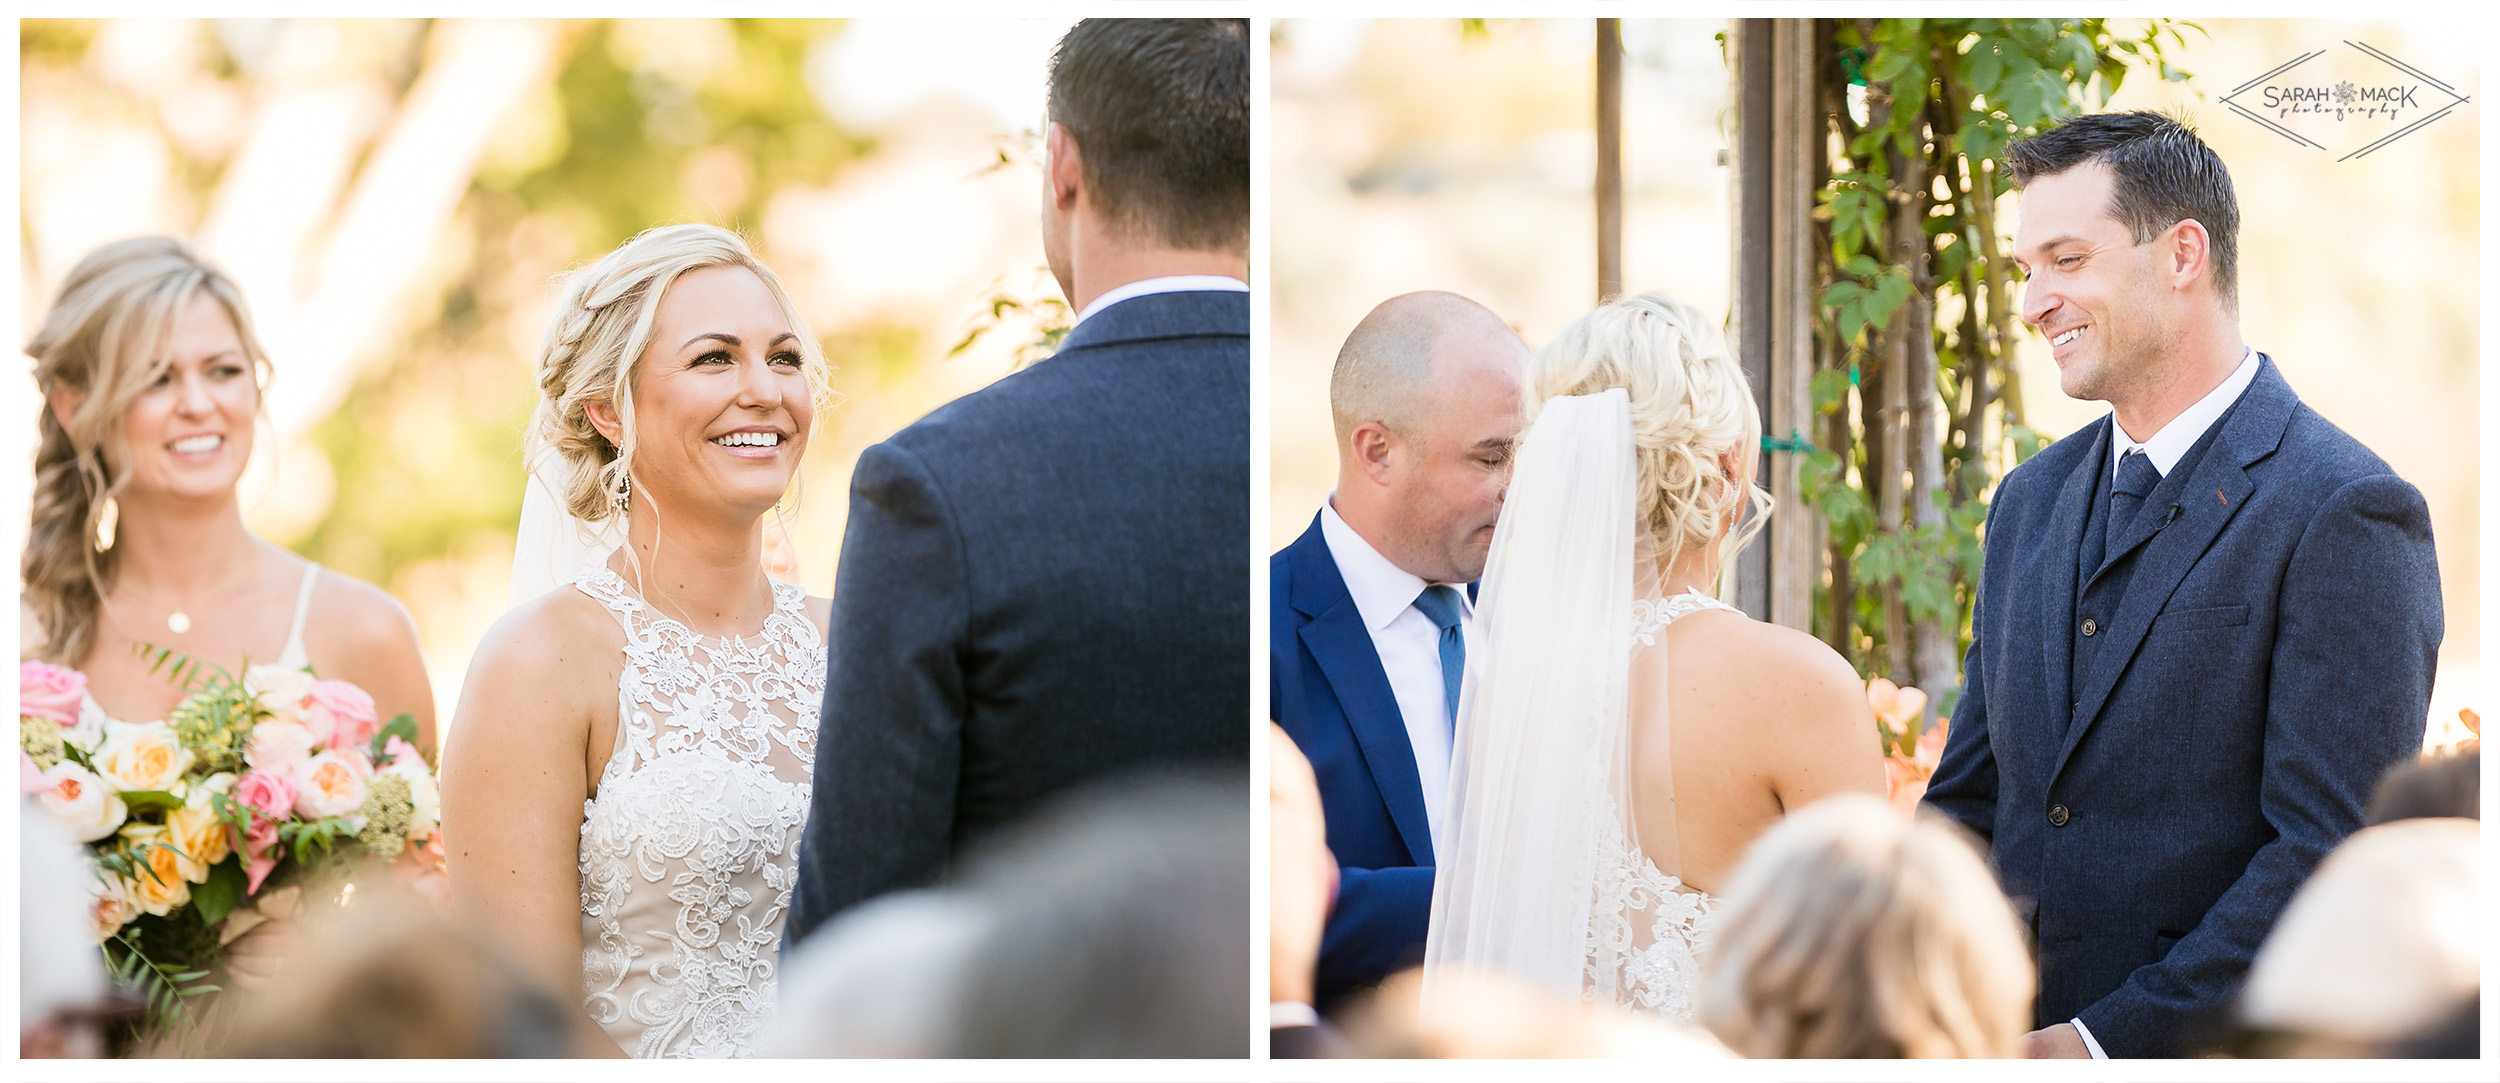 MA-Chandler-Ranch-Paso-Robles-Wedding-Photography-66.jpg